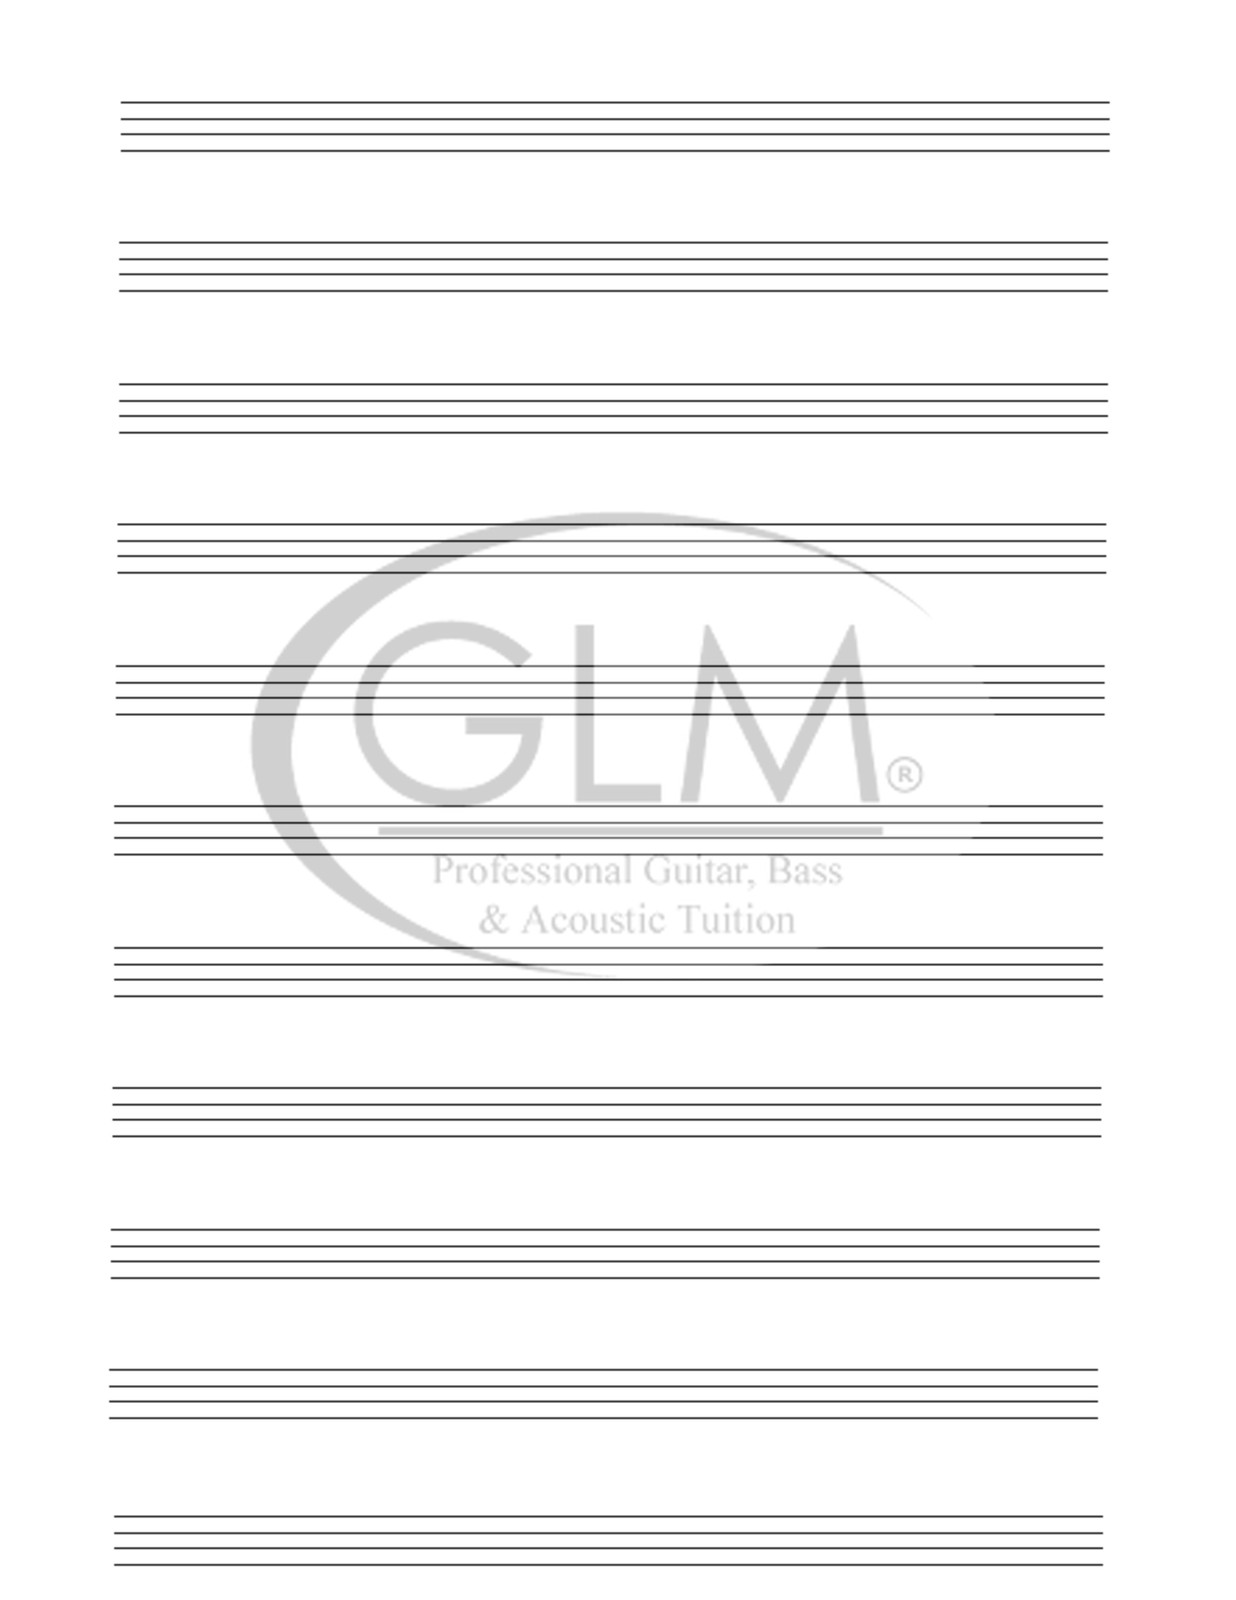 Free Music Sheets For Guitar Chords And Tab